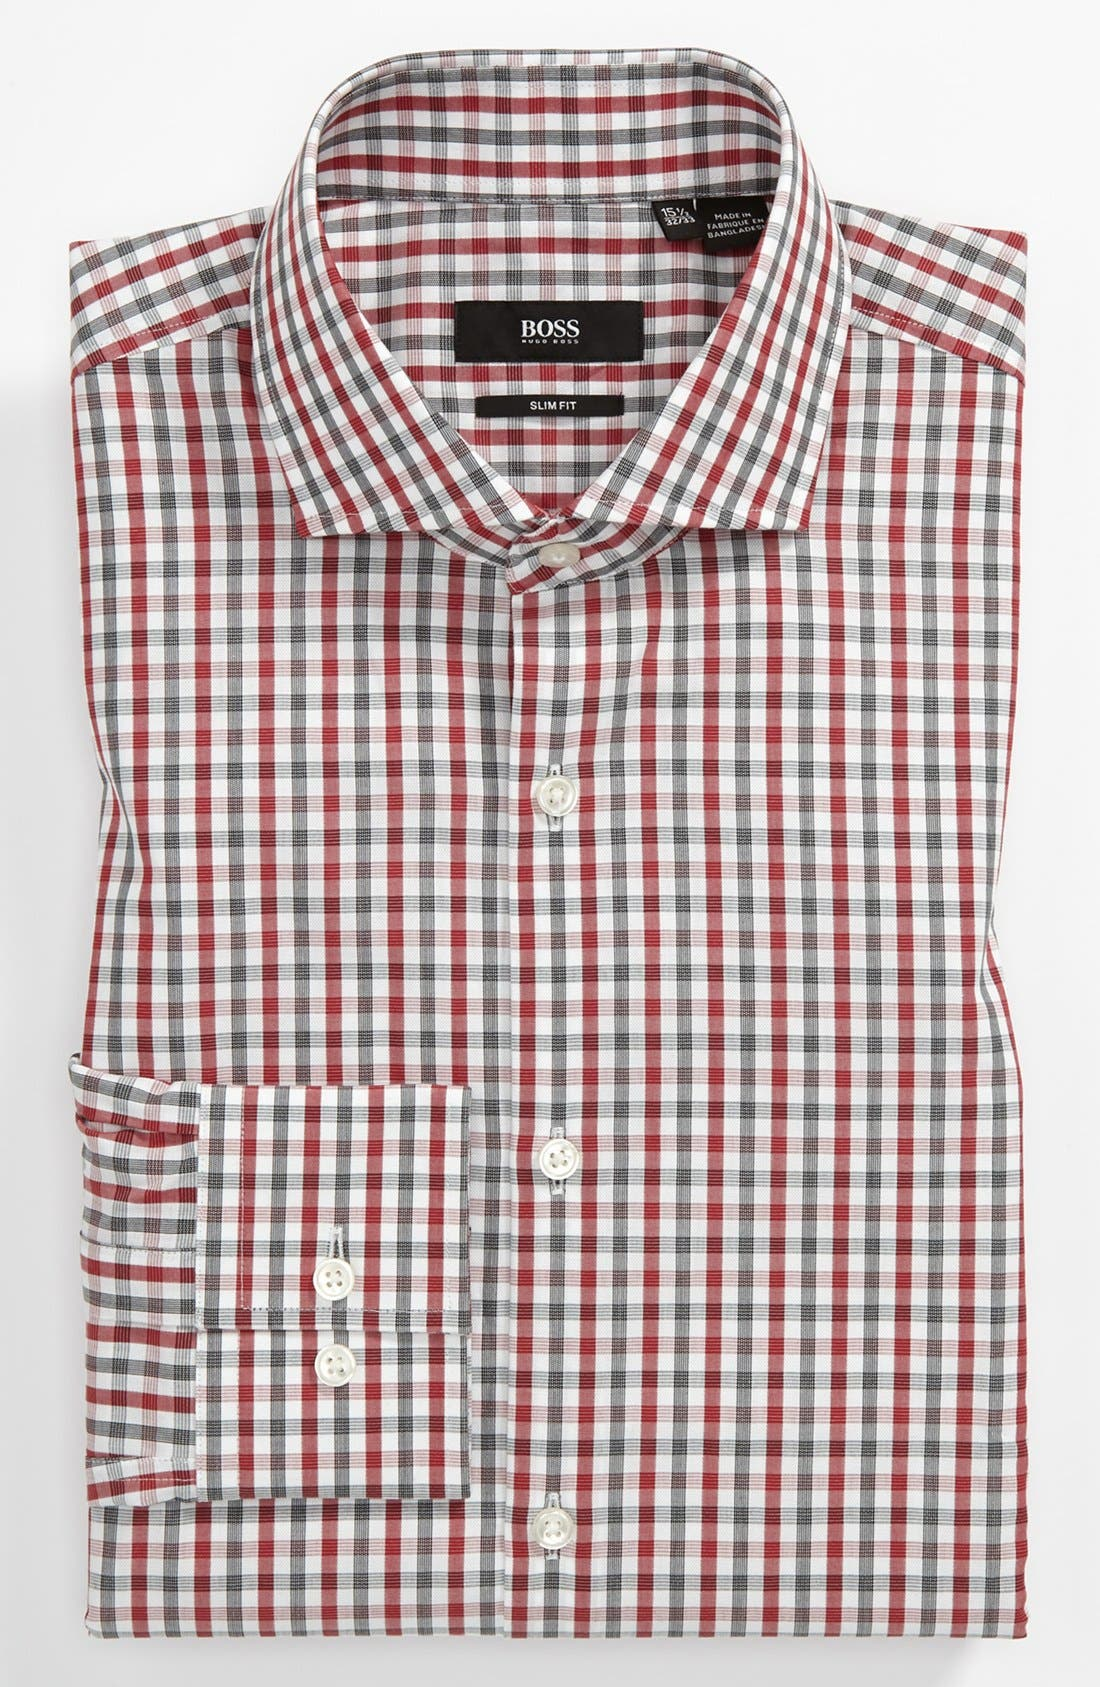 Alternate Image 1 Selected - BOSS HUGO BOSS 'Jason' Slim Fit Dress Shirt